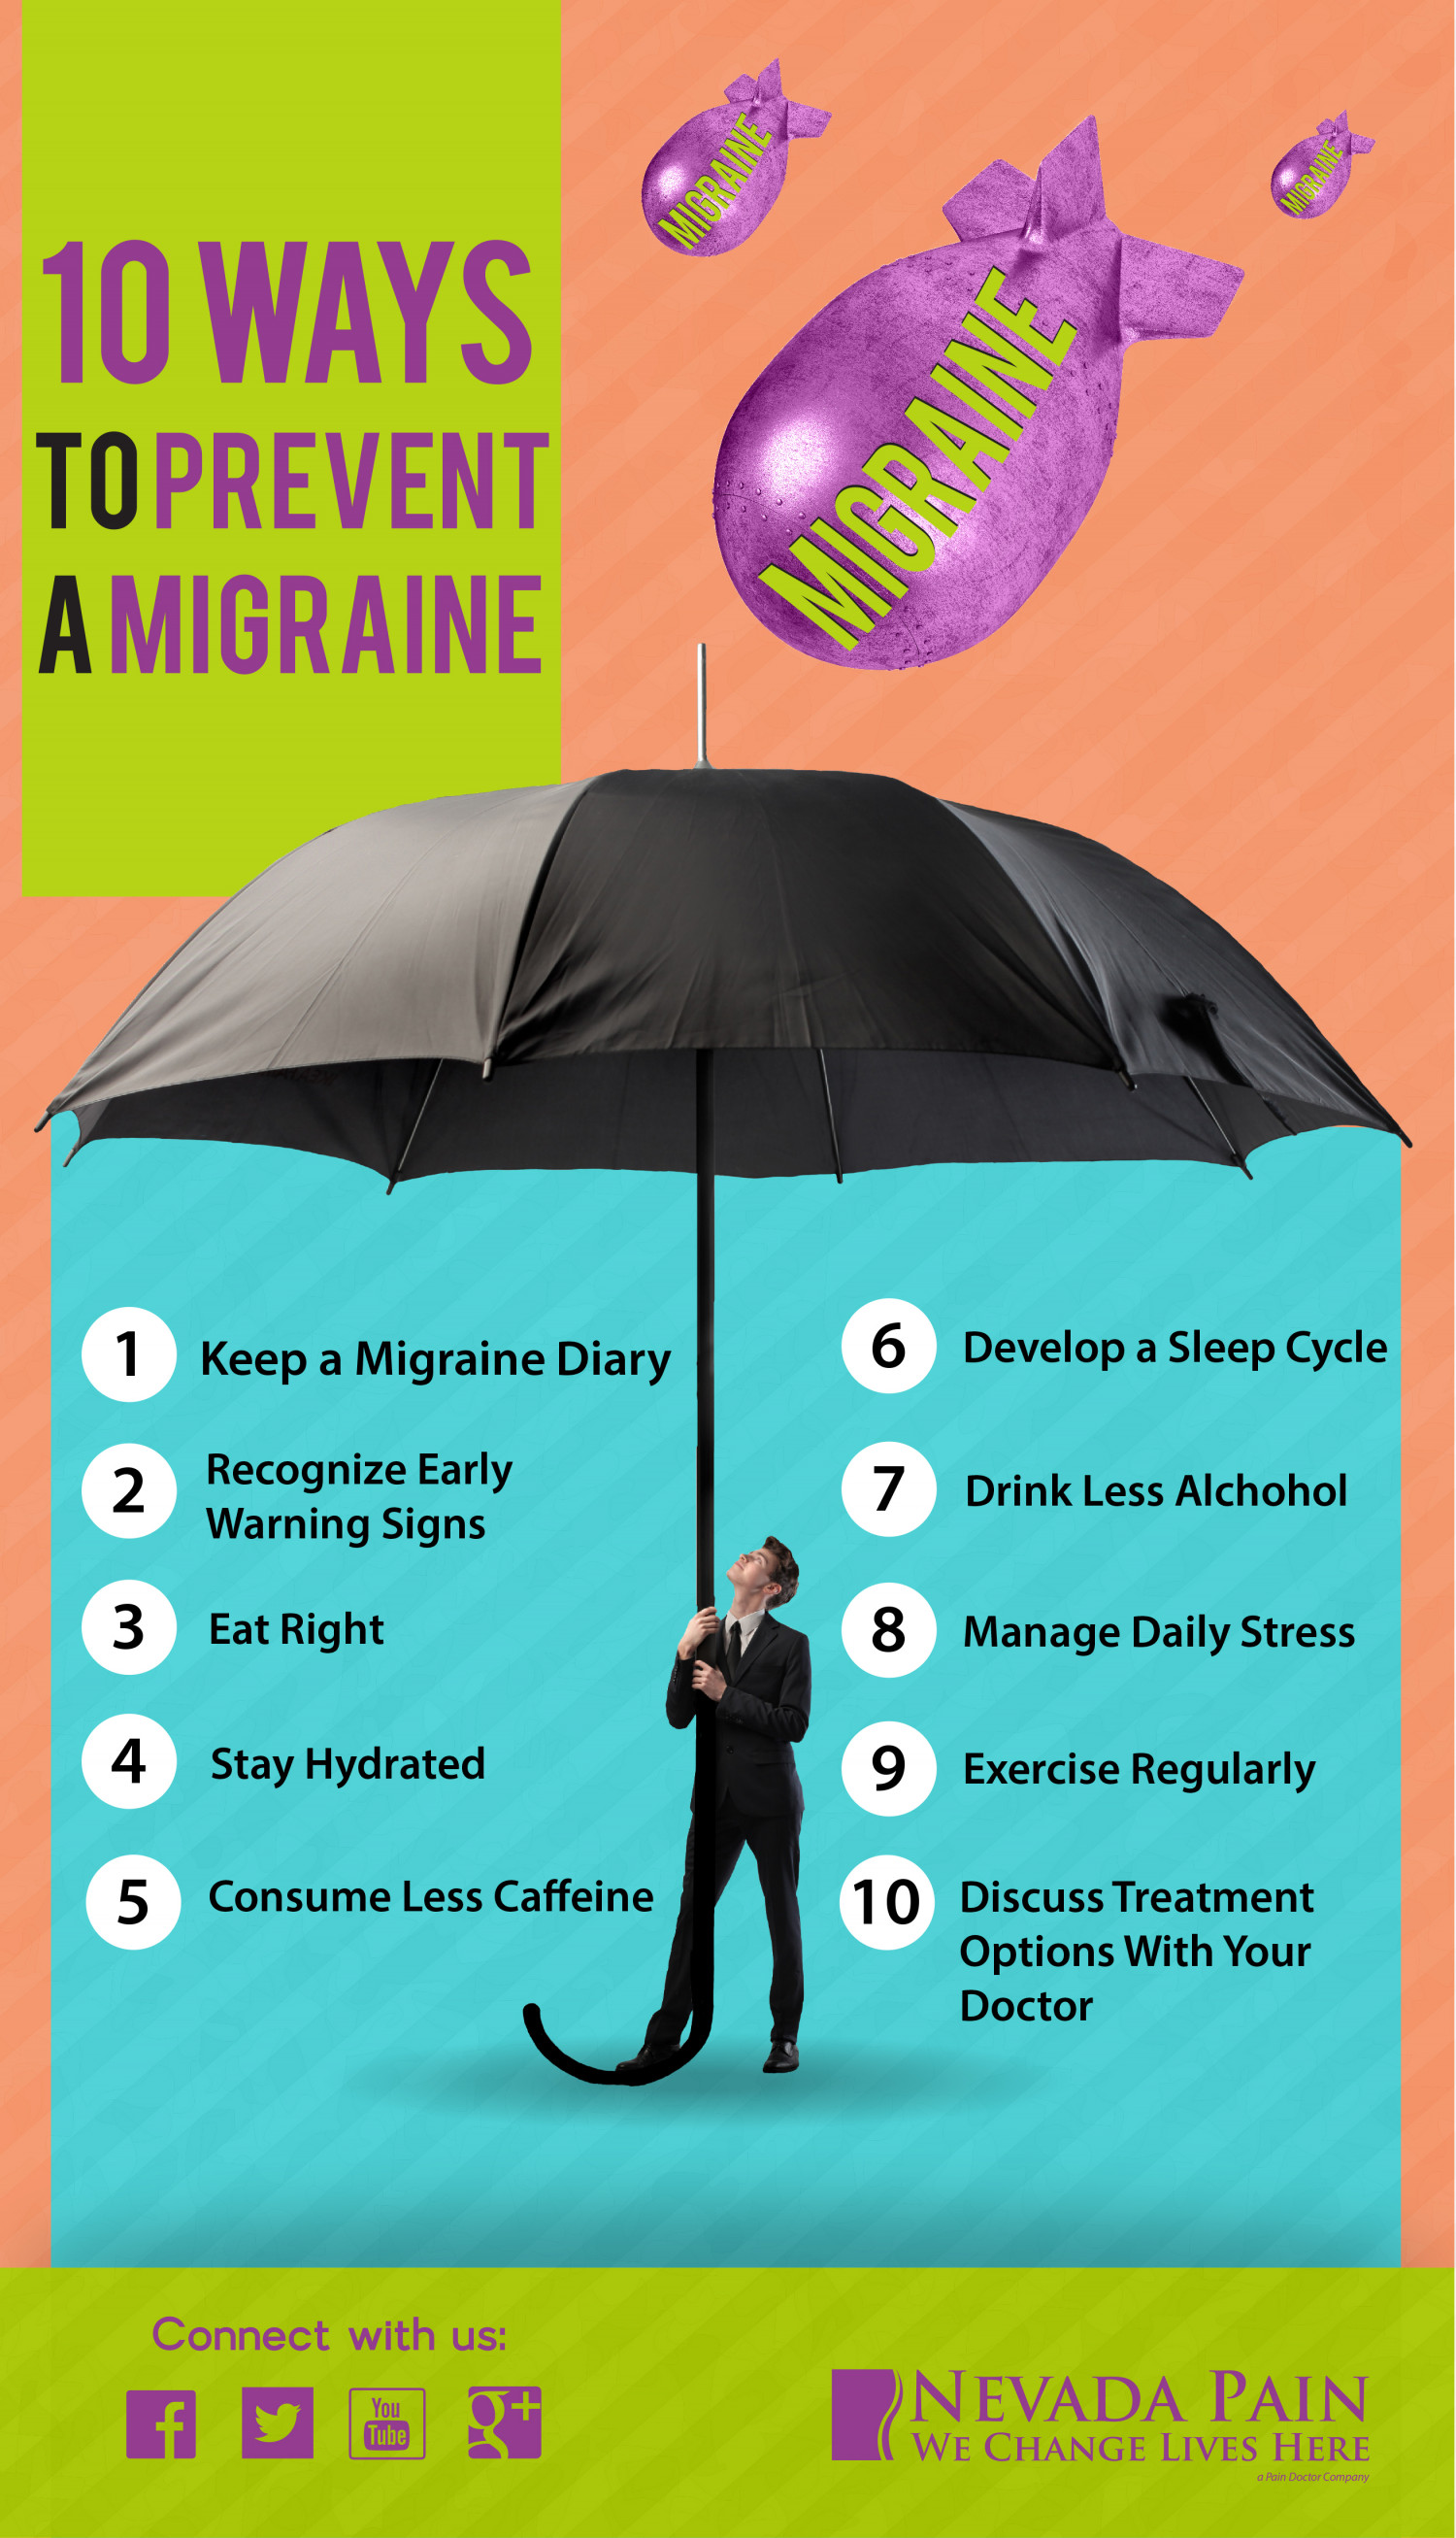 10 Ways to Prevent a Migraine Infographic